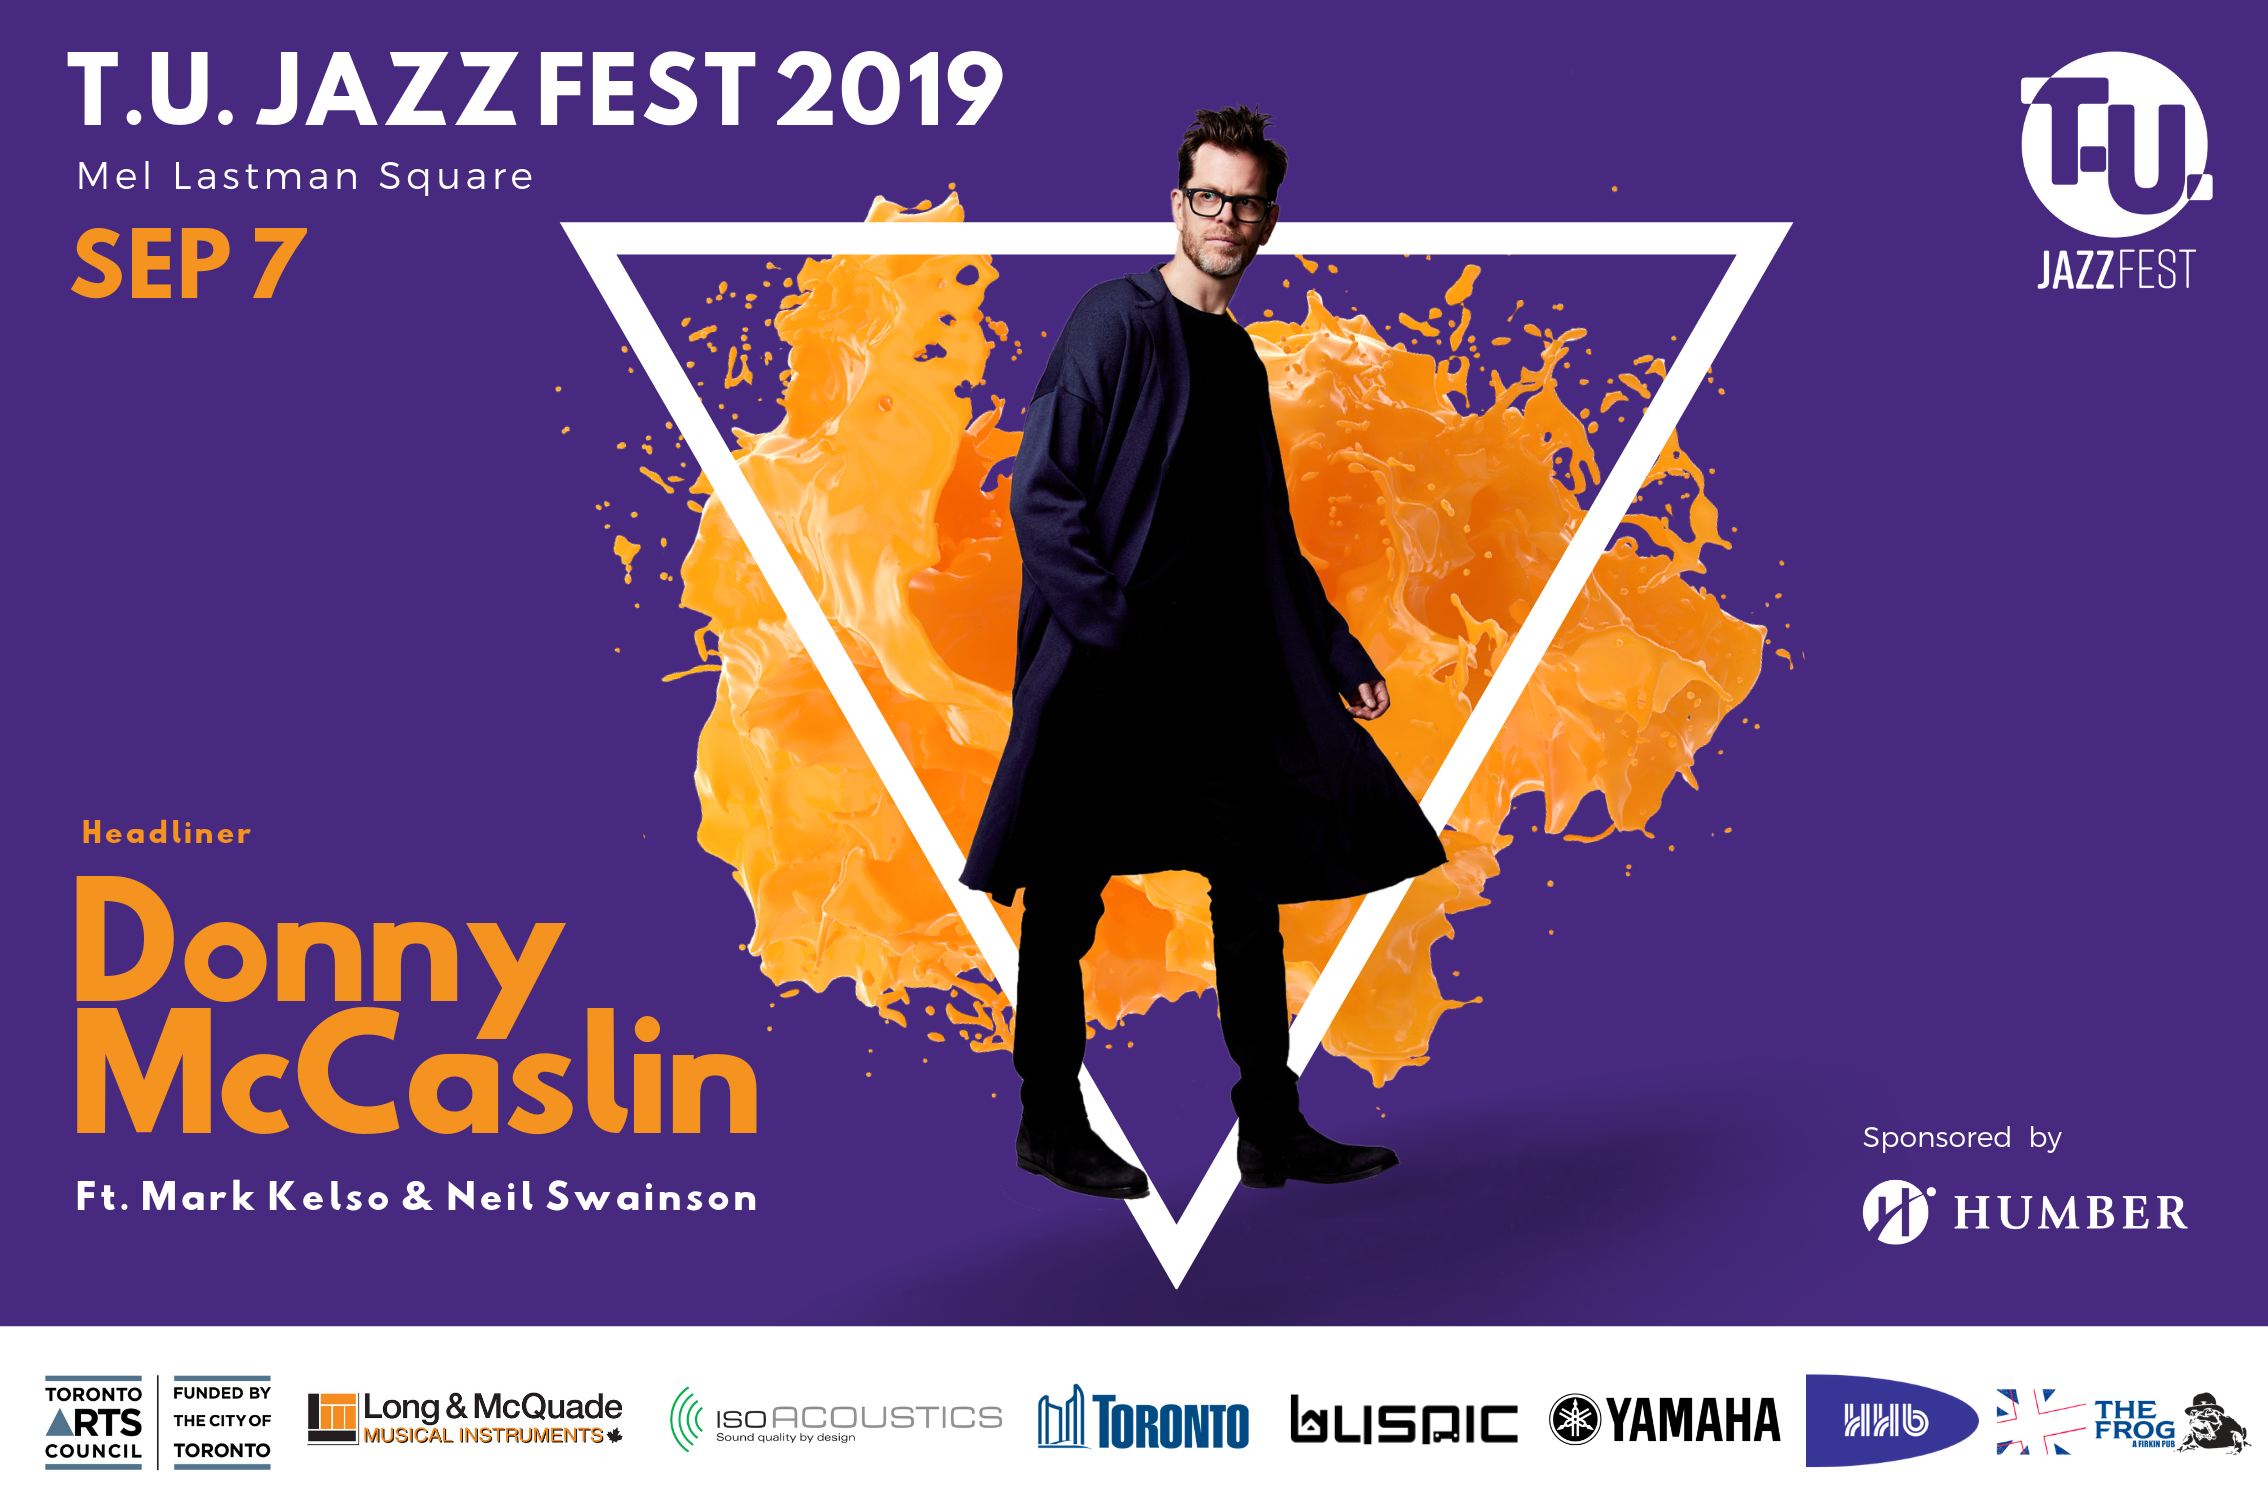 Donny McCaslin - FREE SHOW:VIP TICKET AVAILABLE HERE